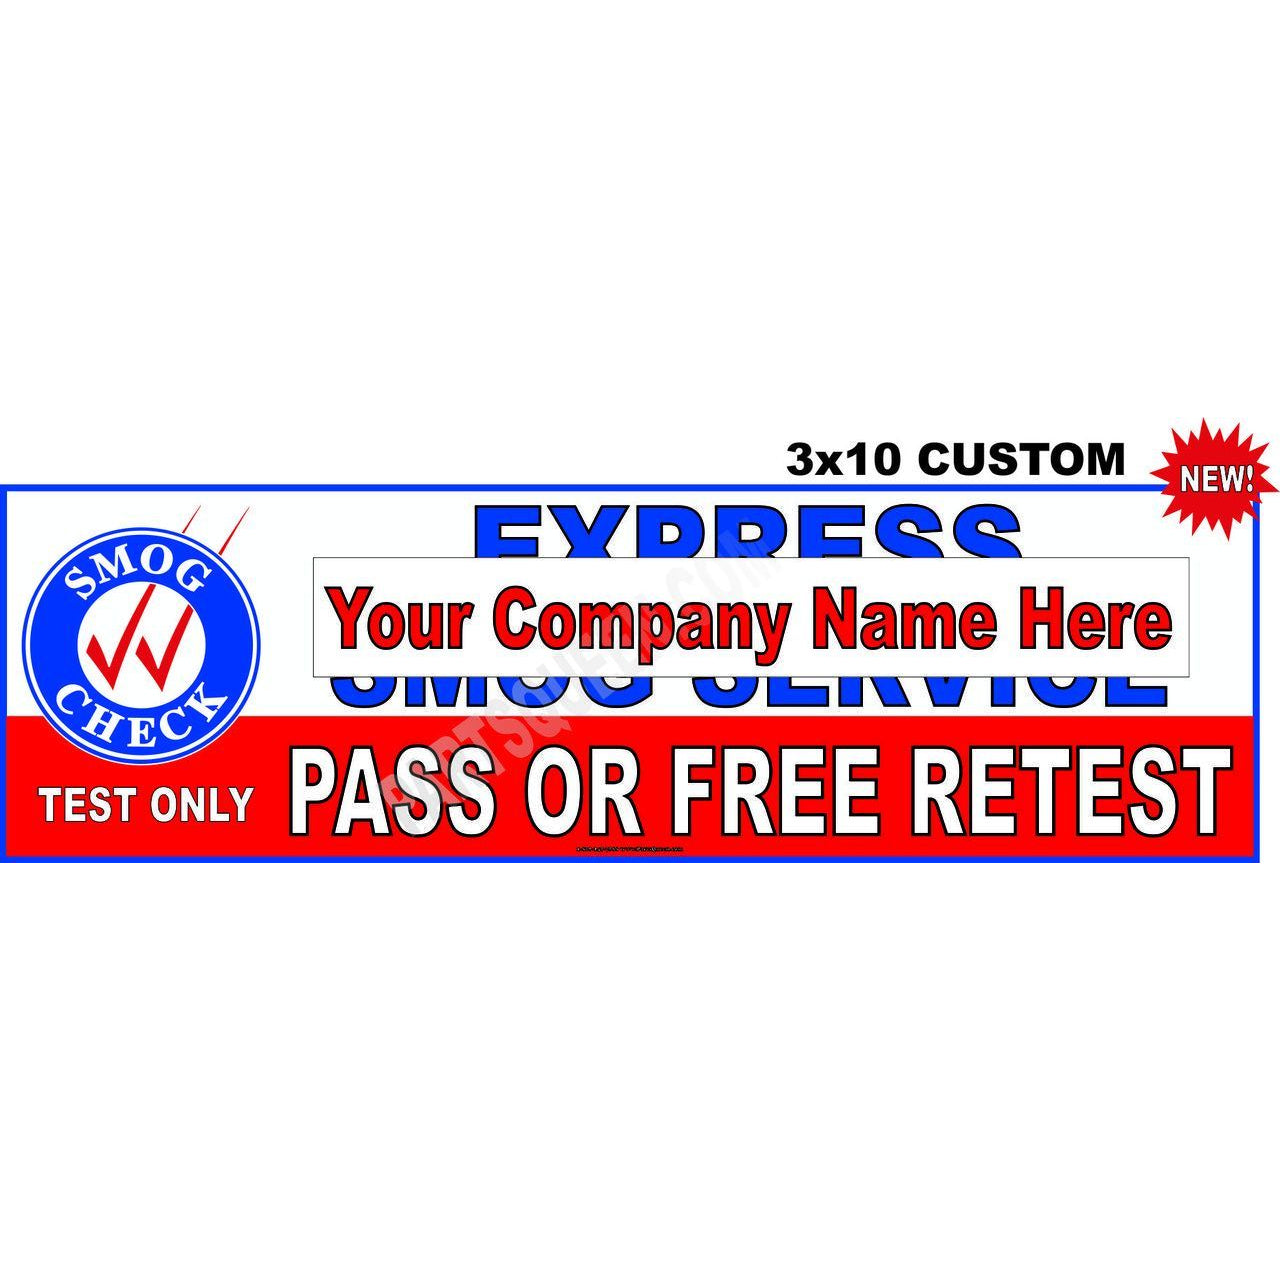 CUSTOM BANNER PASS OR FREE RETEST # SB-99-7